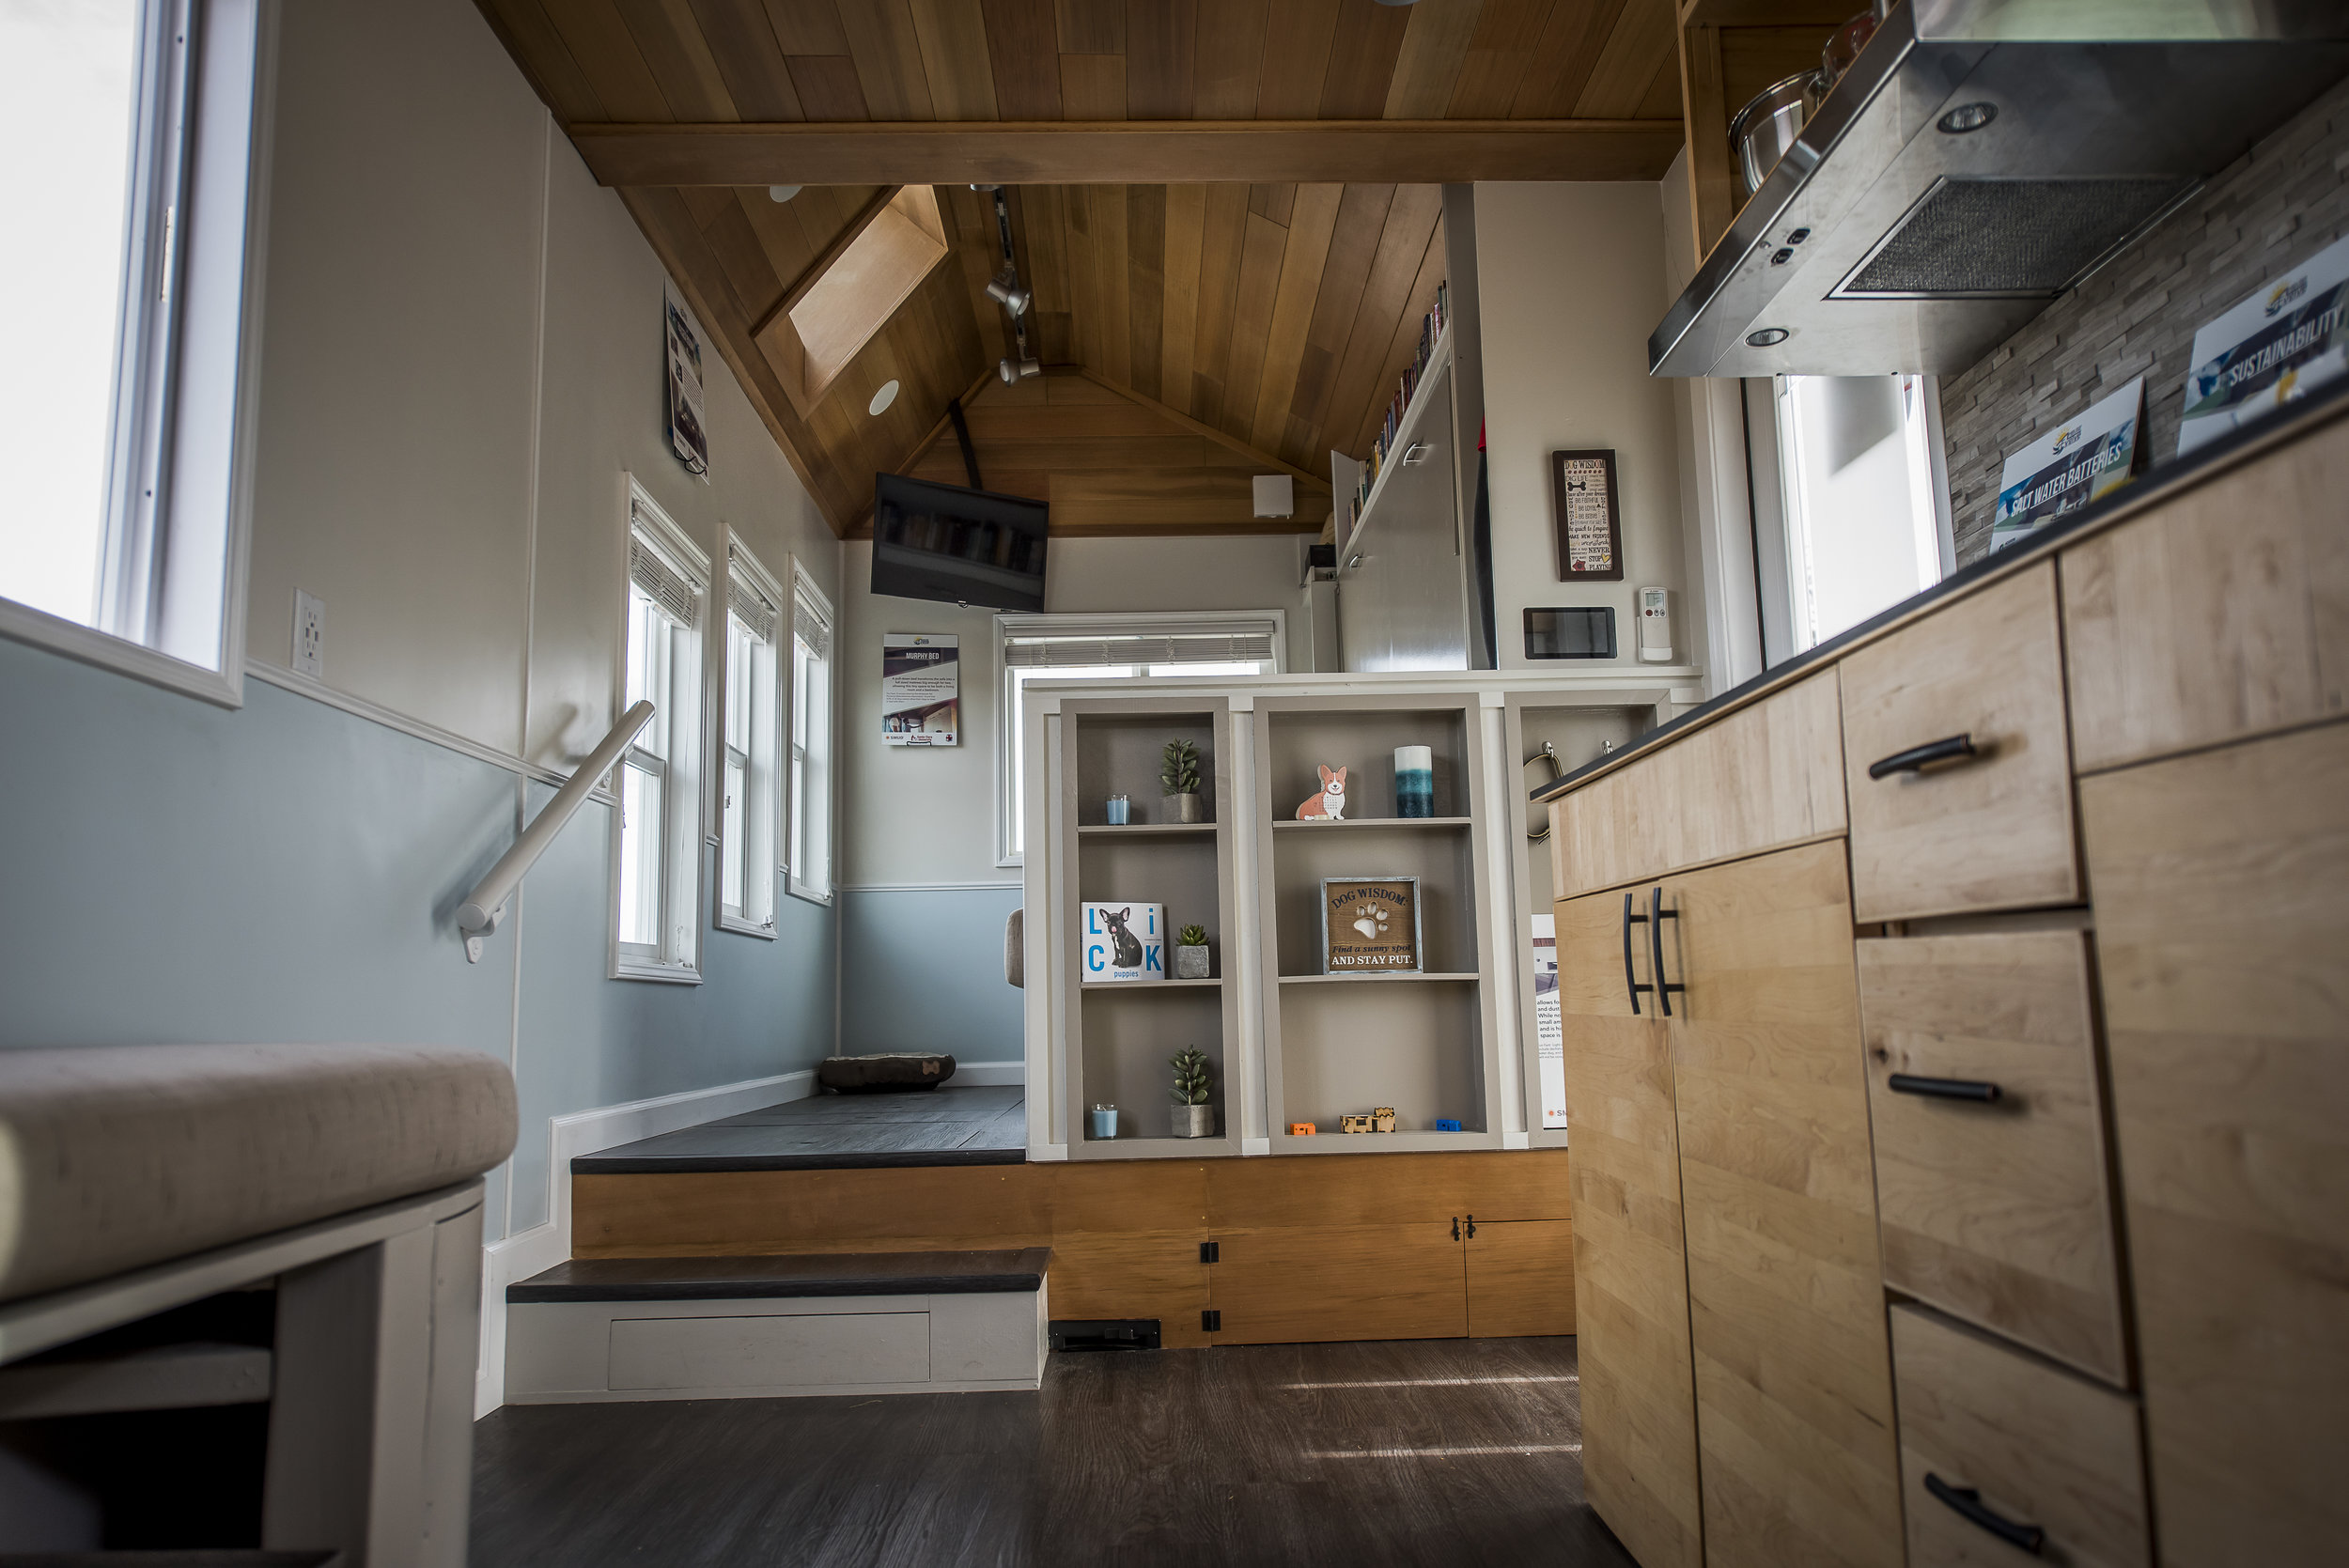 JL161013_4161_0274_TinyHouseCompetition.jpg